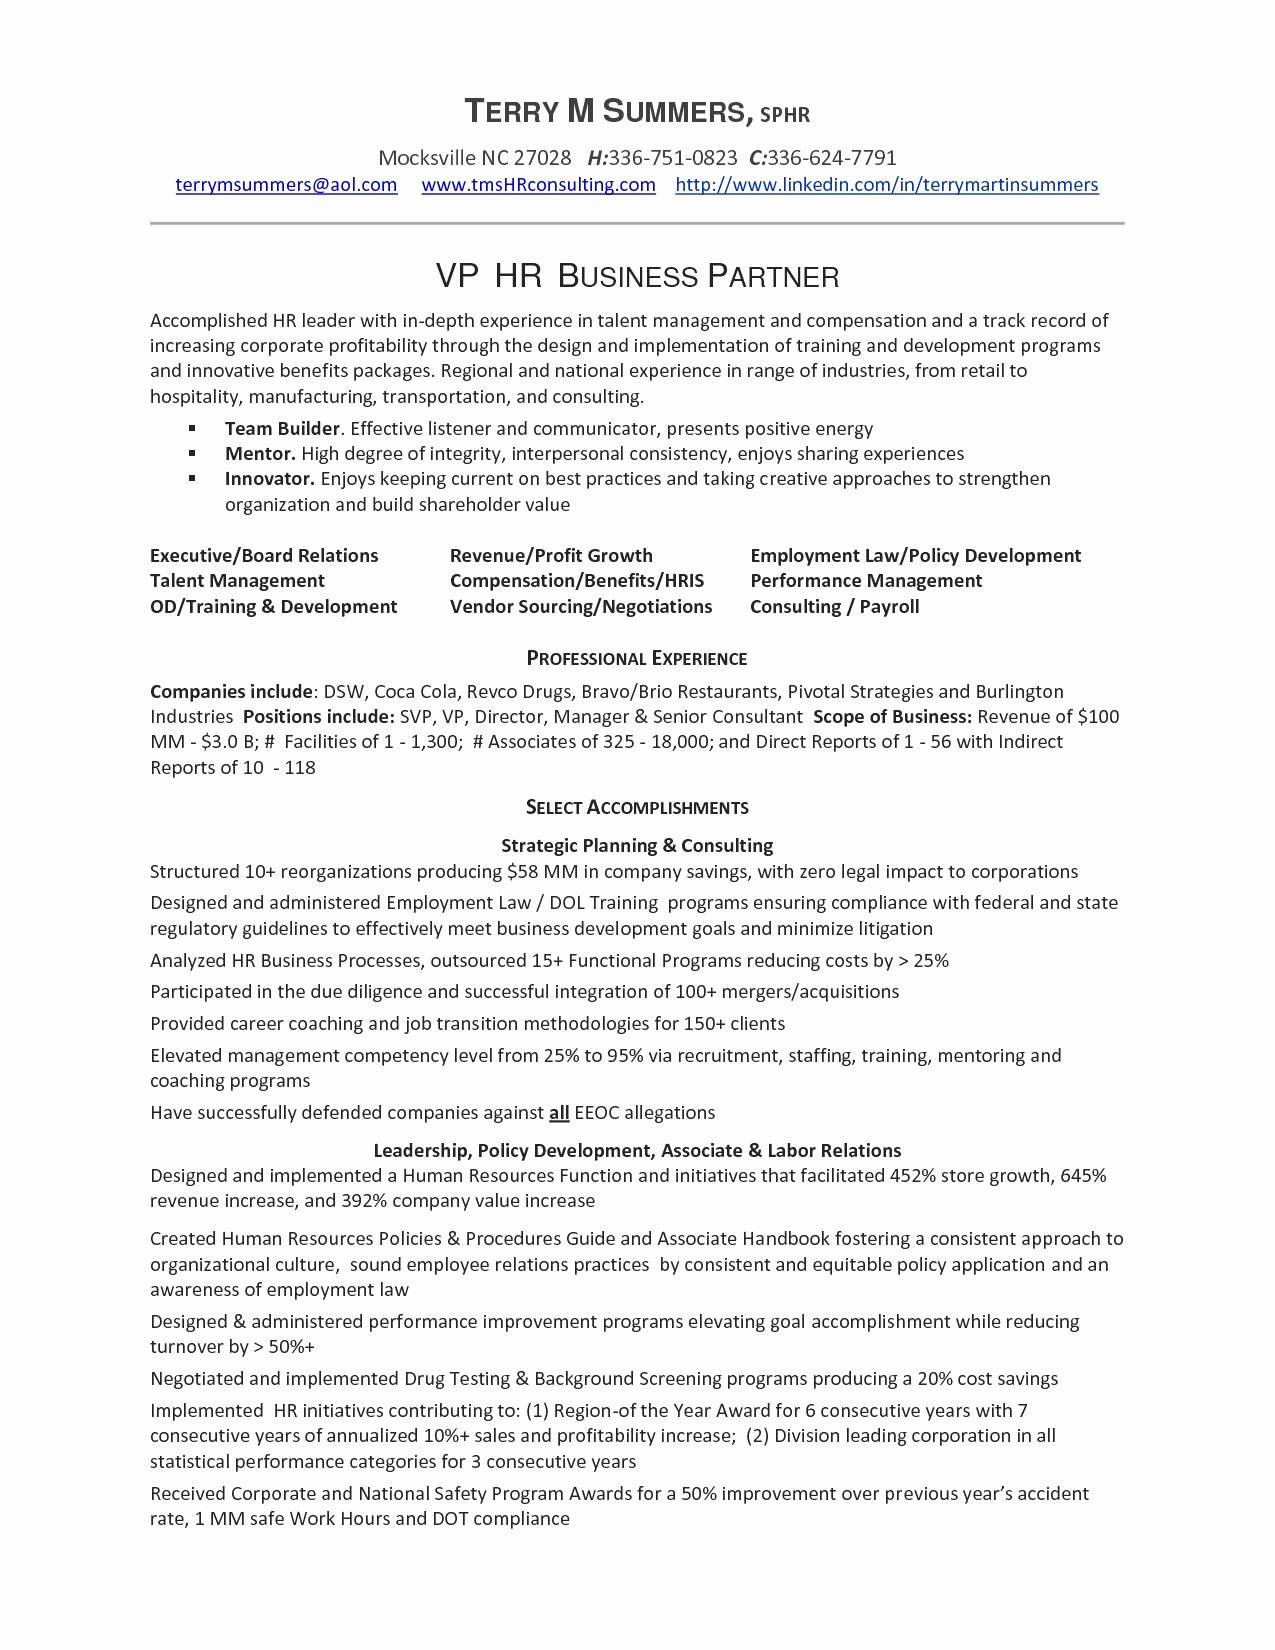 Customer Service Resume Samples Free - Procurement Specialist Resume Samples Elegant Professional